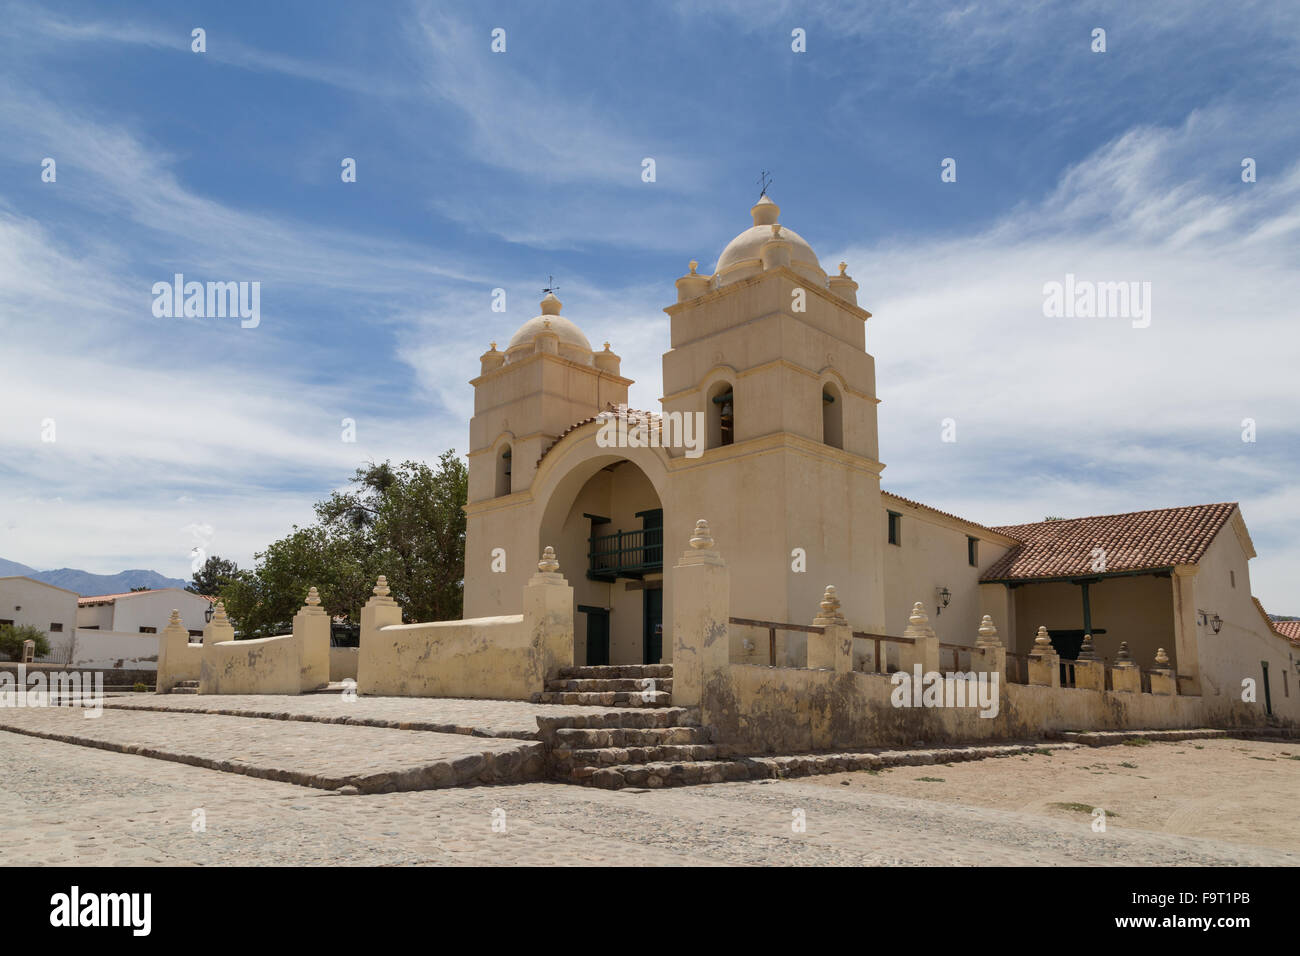 Photograph of the church in the small town Molinos on route 40 in the Northwest of Argentina. - Stock Image